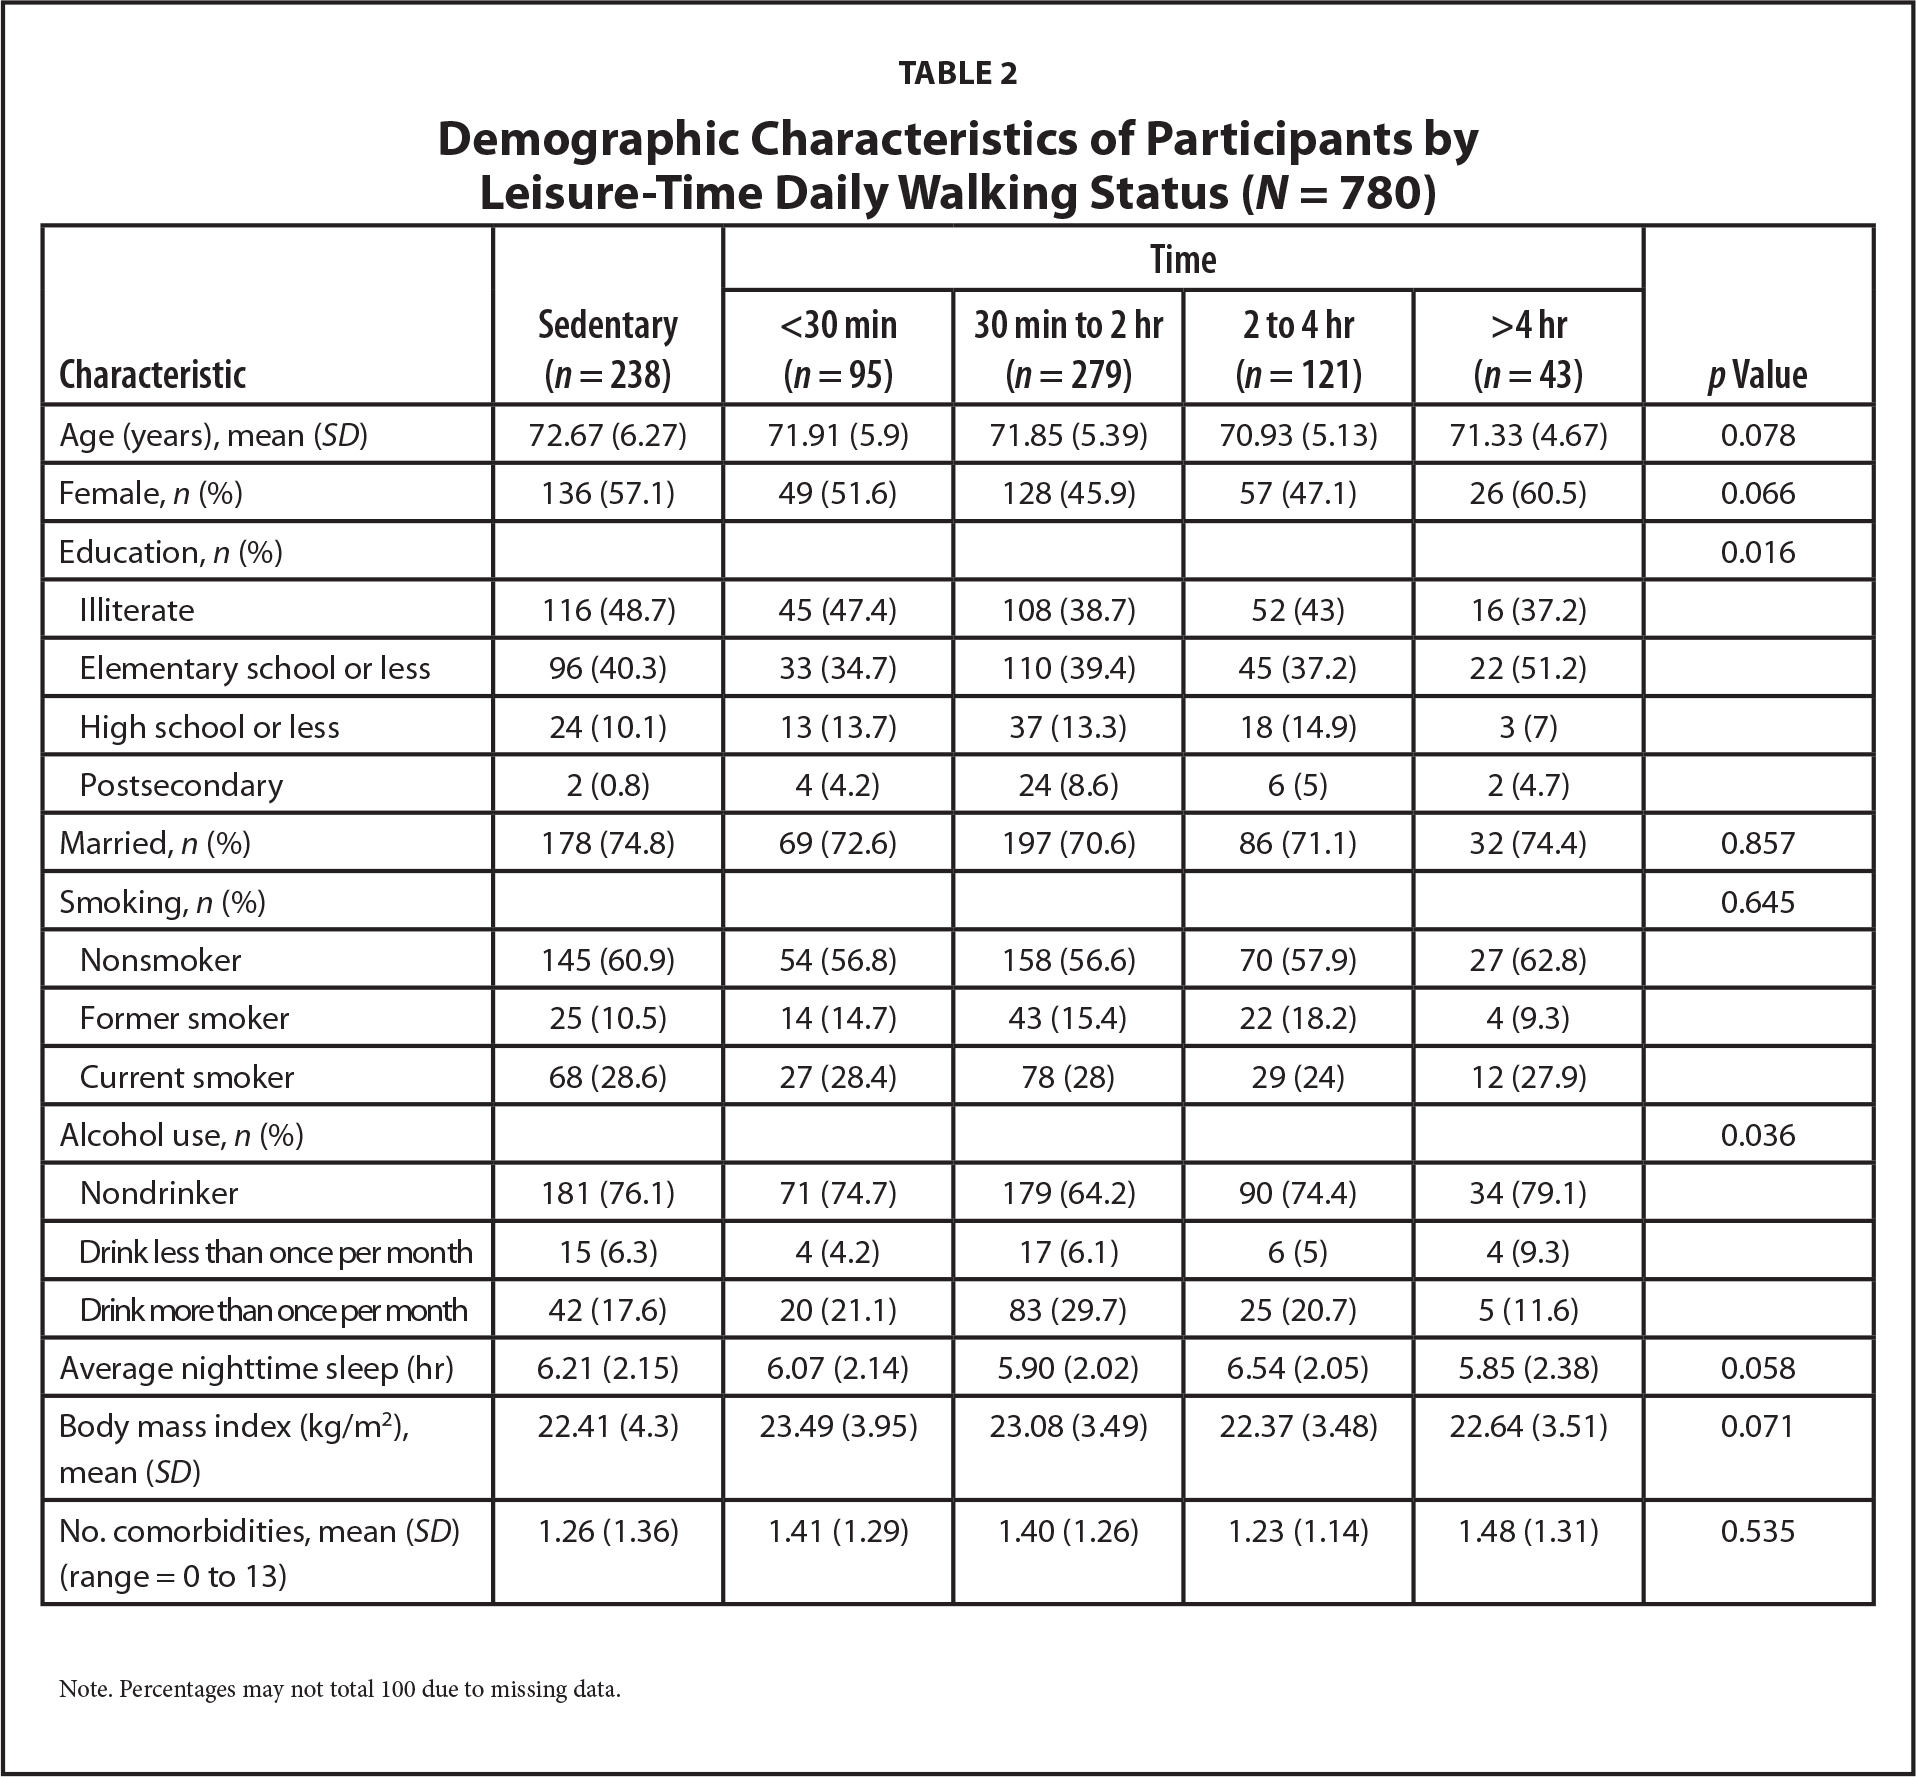 Demographic Characteristics of Participants by Leisure-Time Daily Walking Status (N = 780)